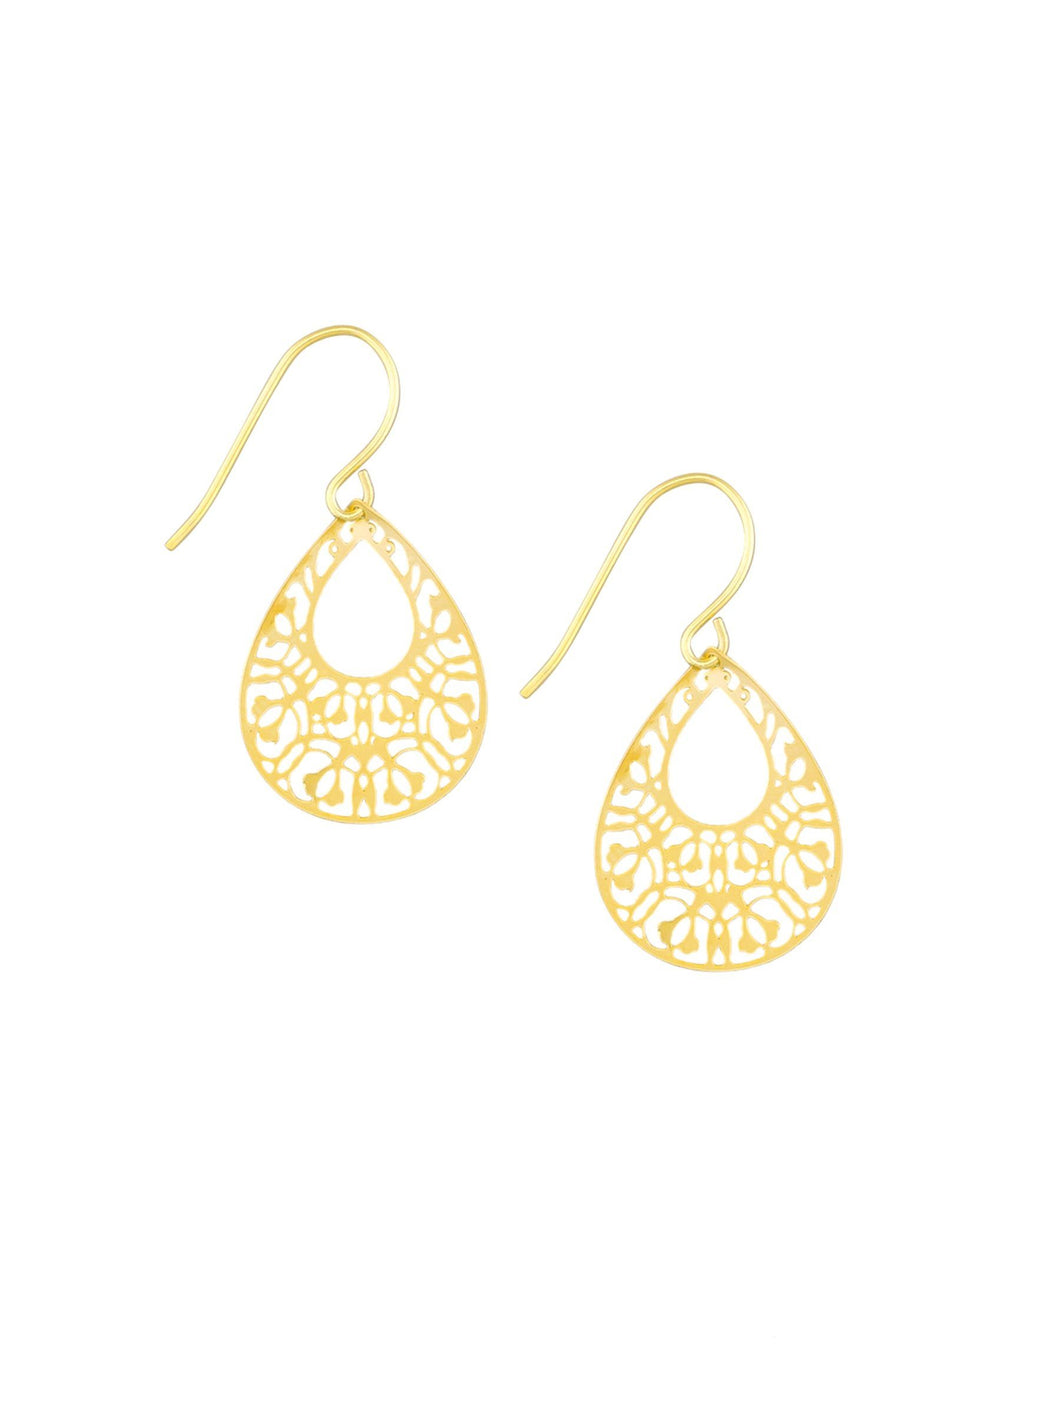 Tiger Tree Gold Mini Filigree Teardrops Earrings - Global Free Style